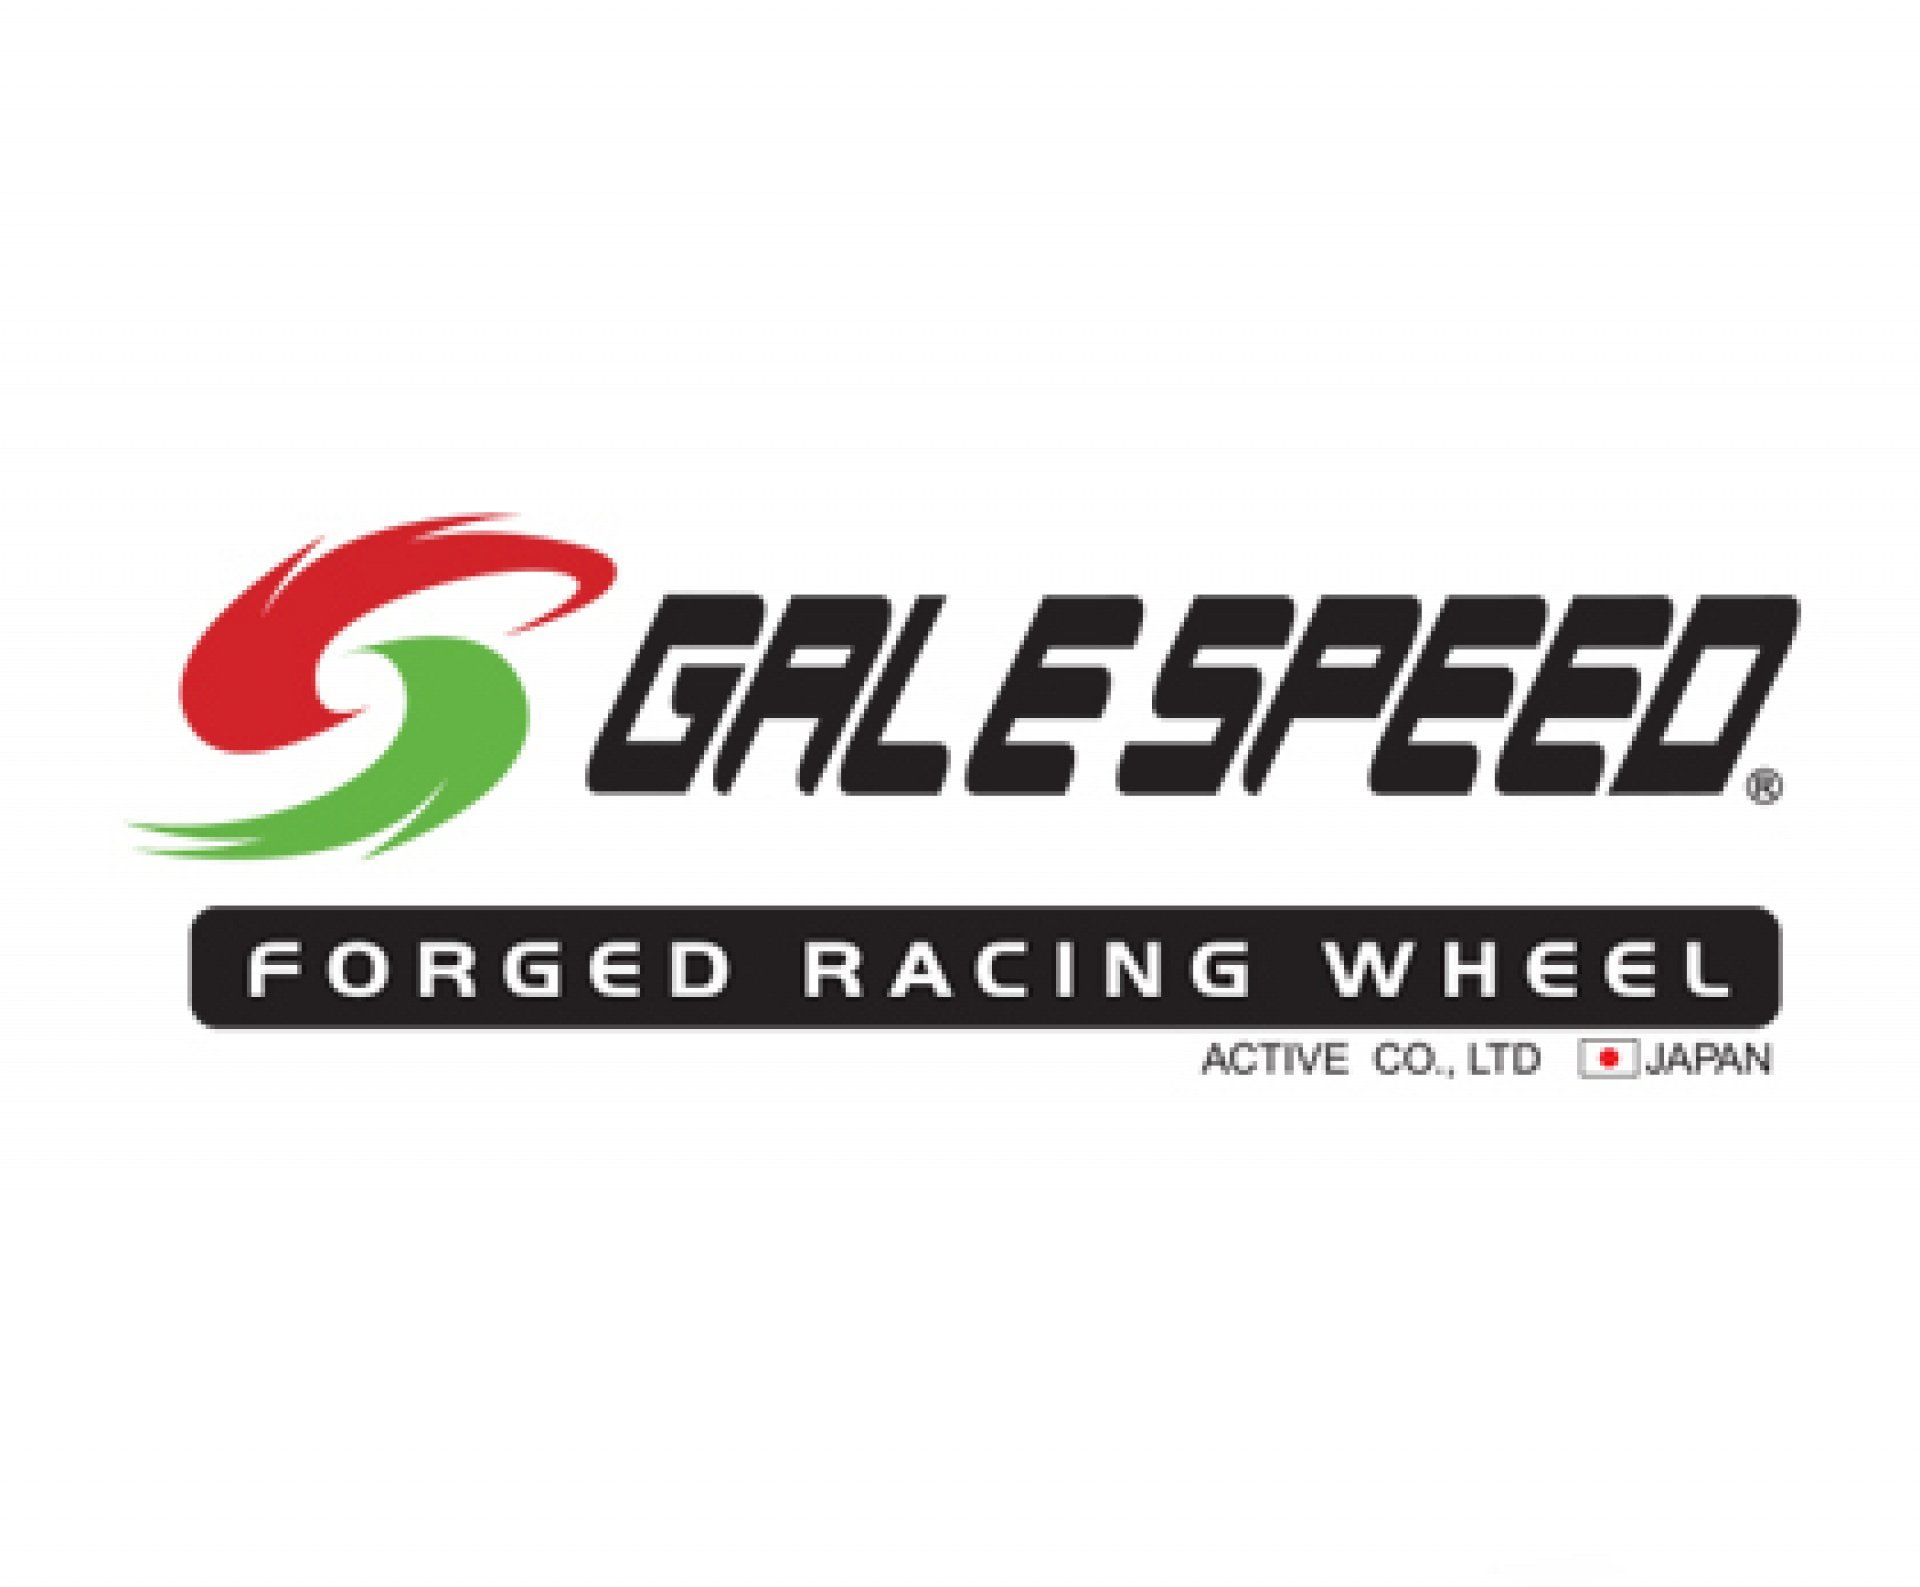 Galespeed Dealer